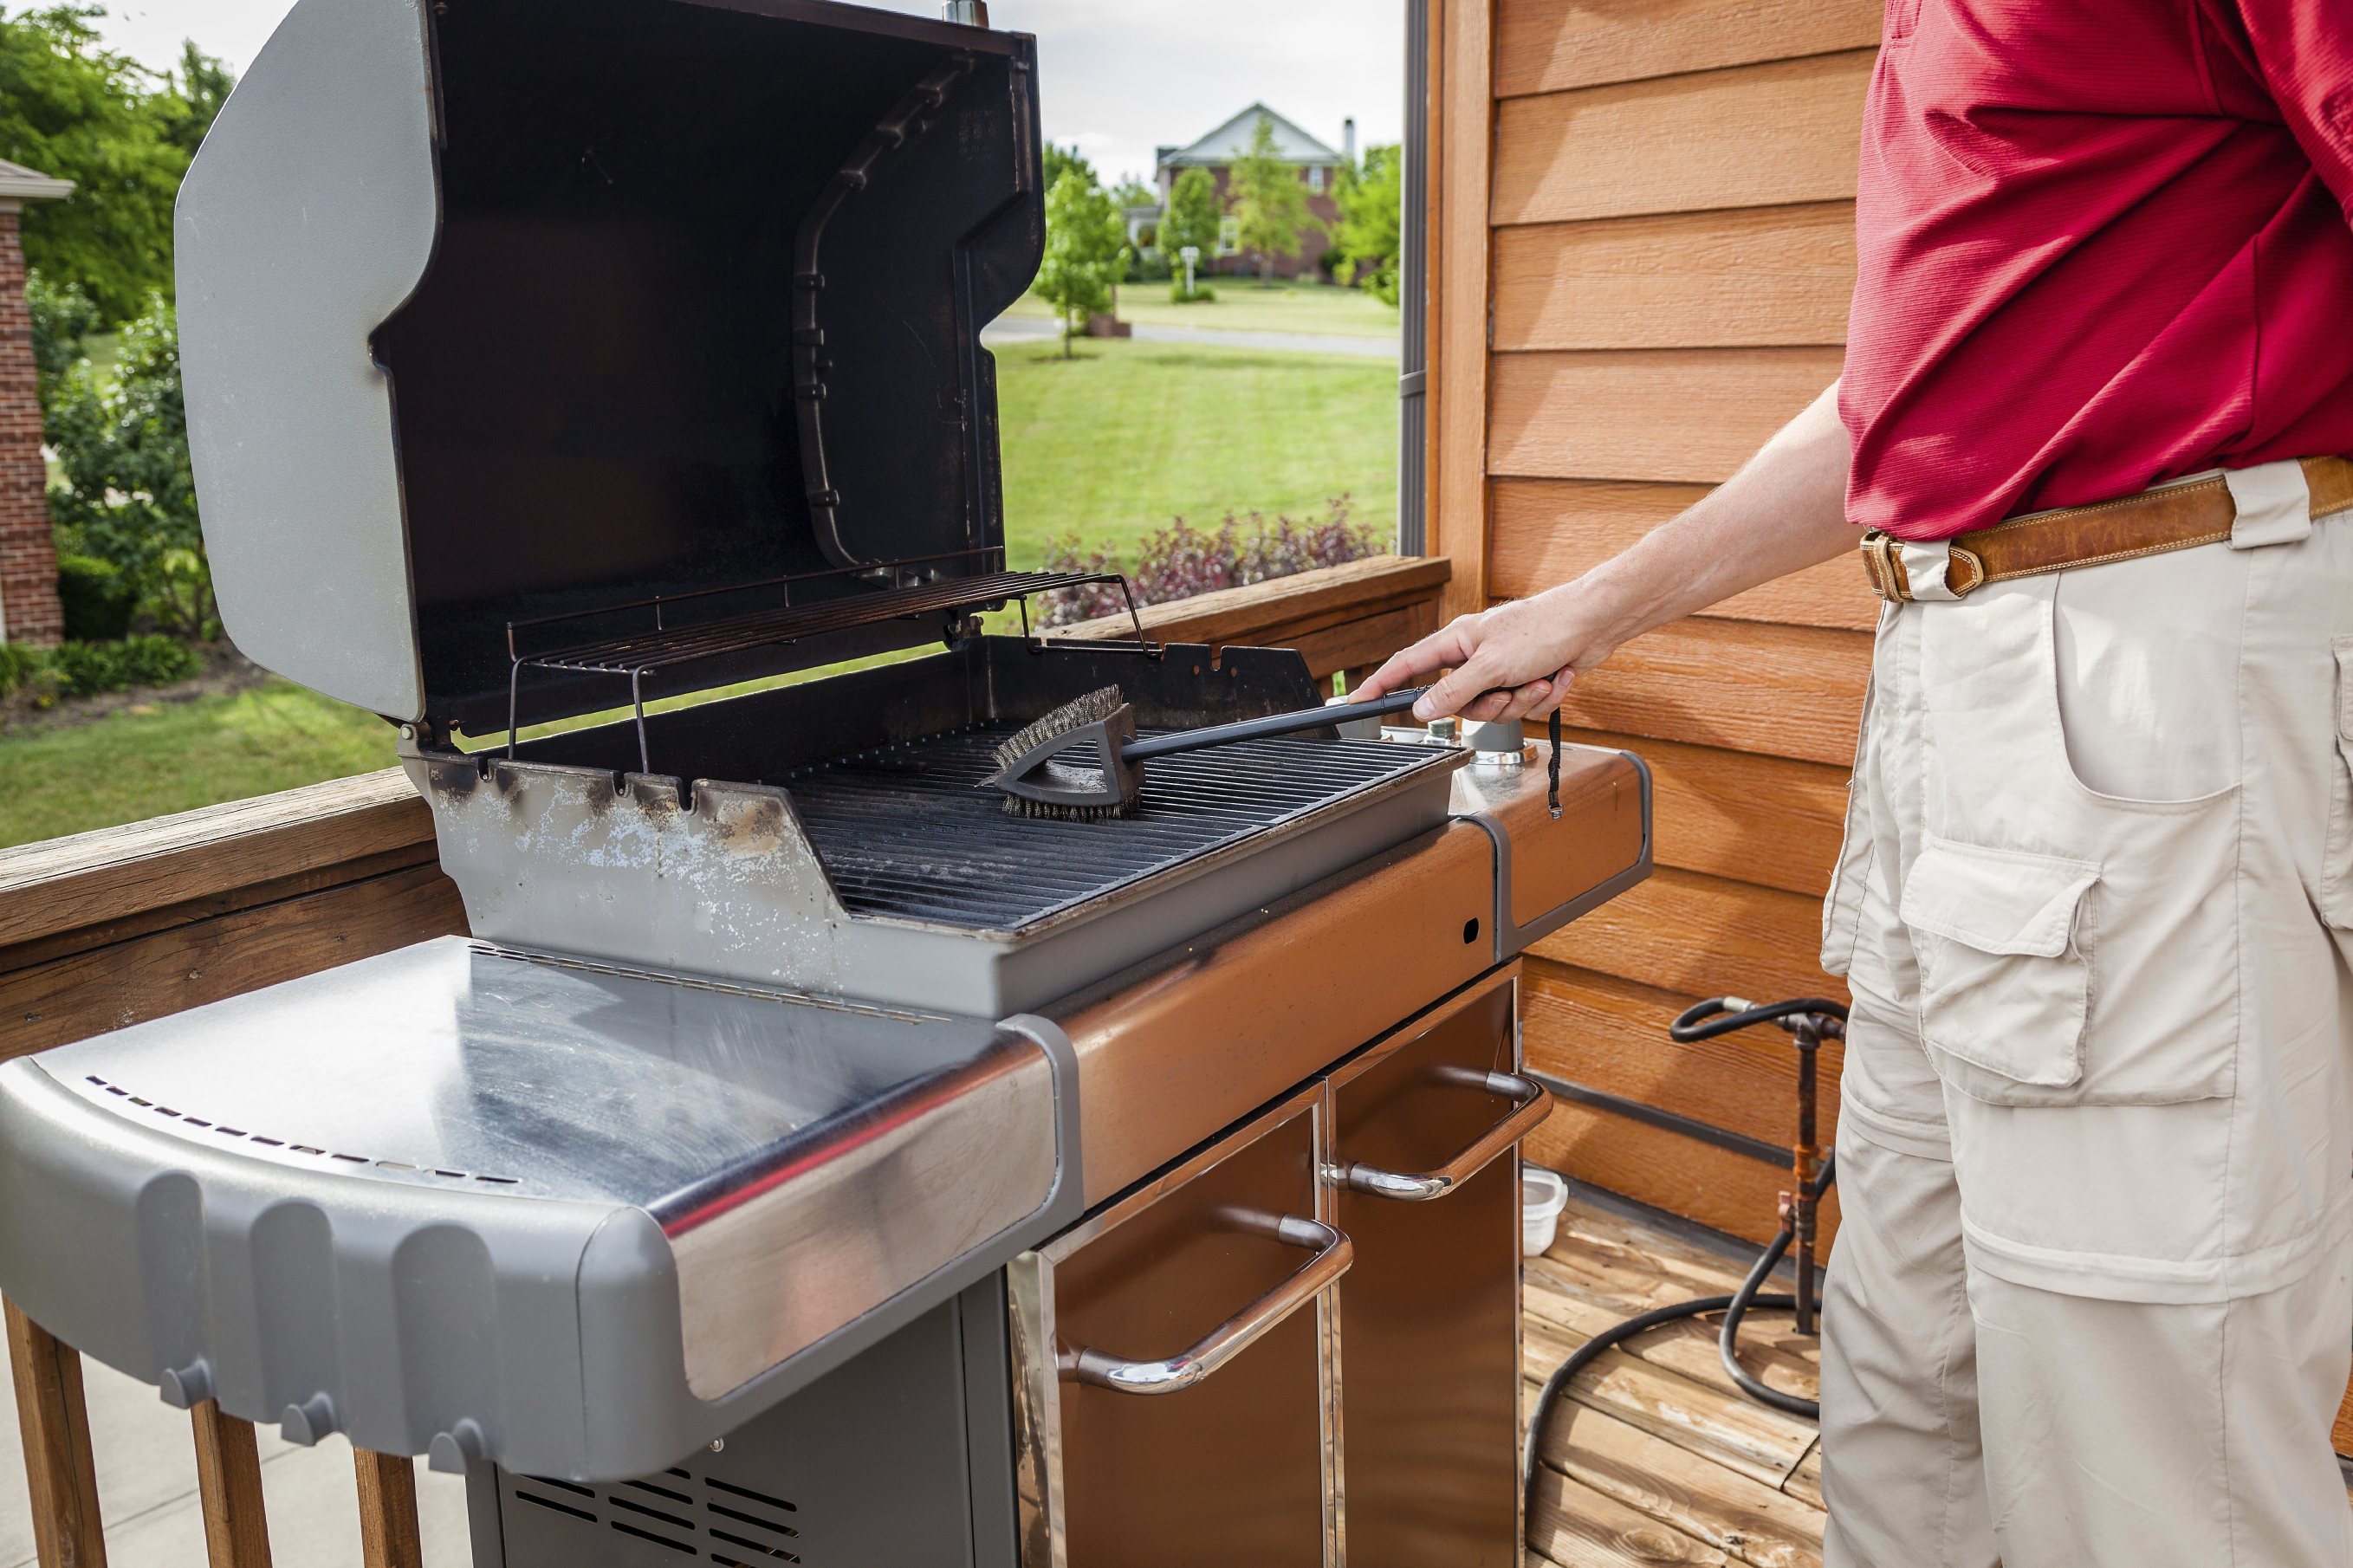 Dangers Of Bbq Grill Cleaning Brushes With Metal Bristles Cbs News